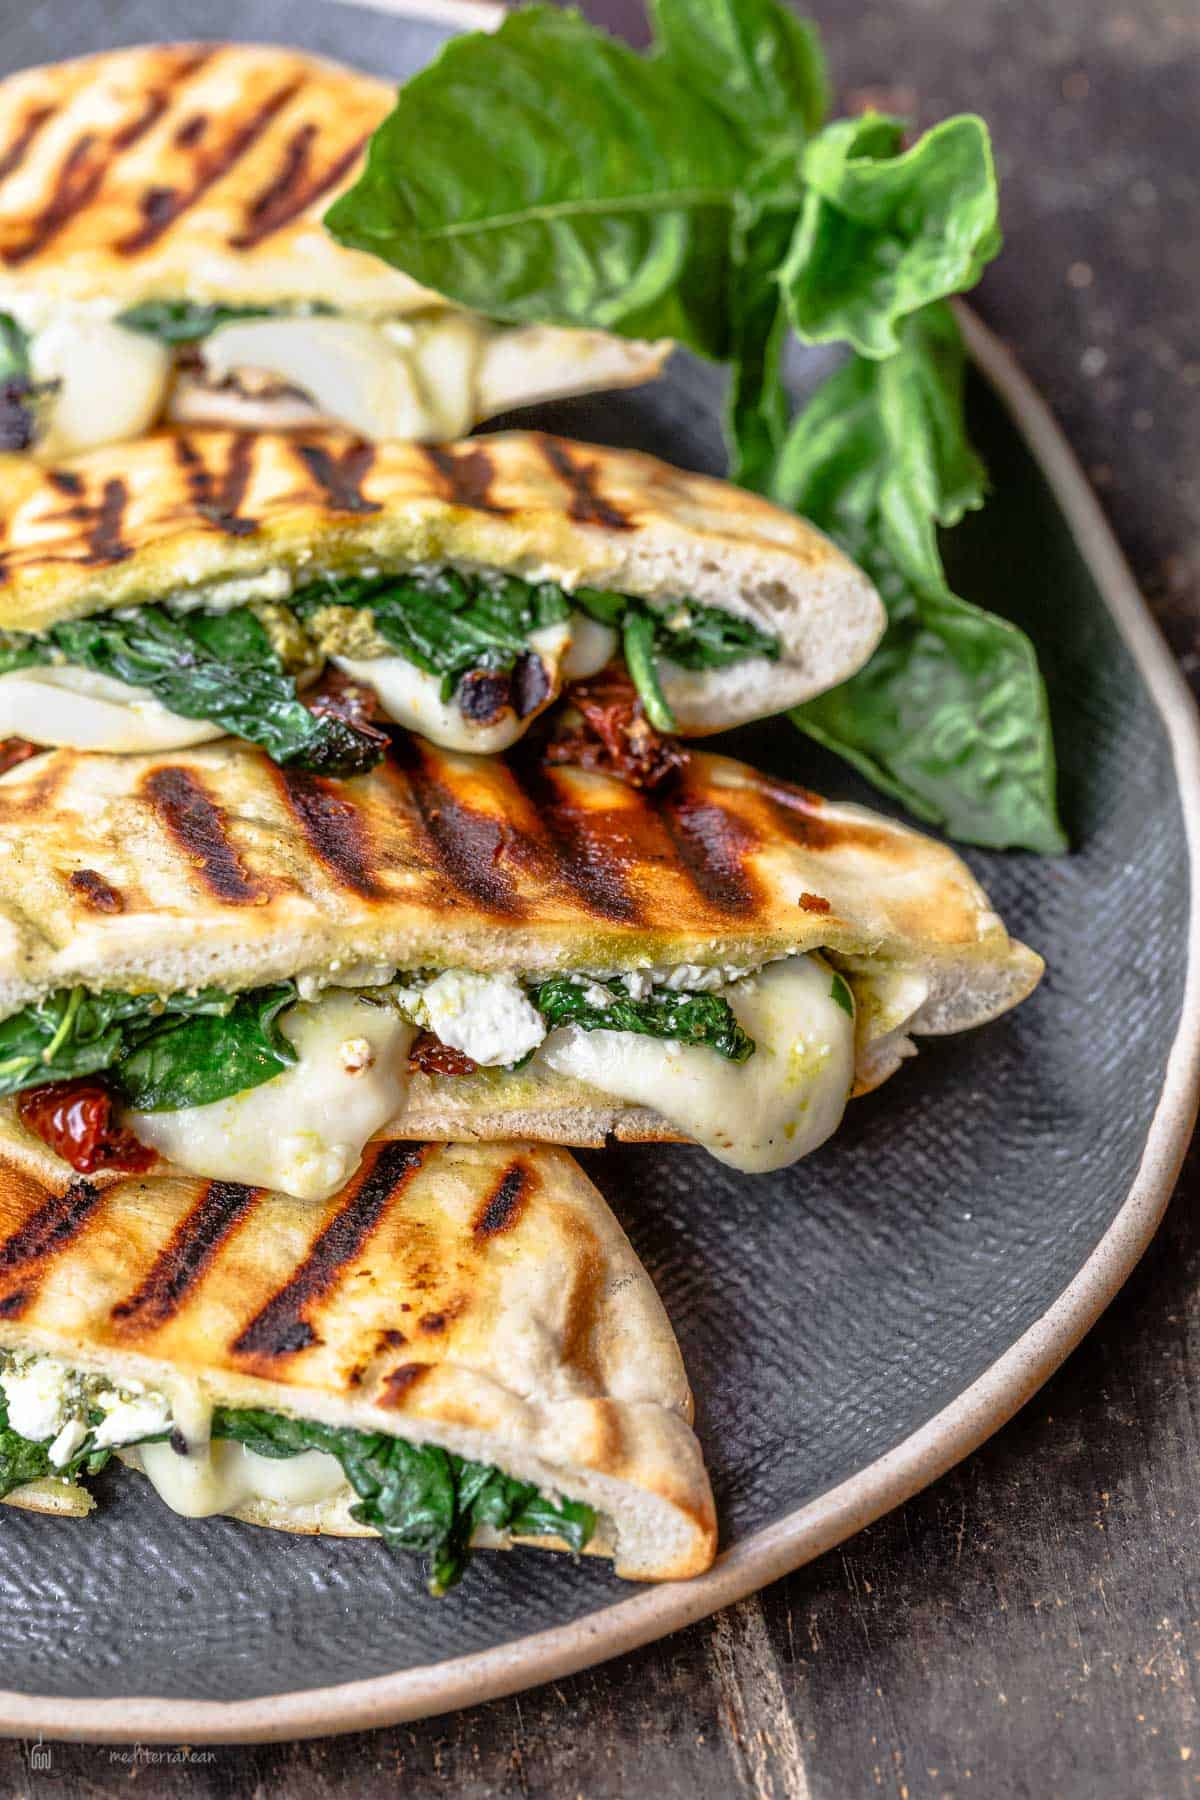 pita grilled cheese sandwiches assembled on black platter with basil garnish